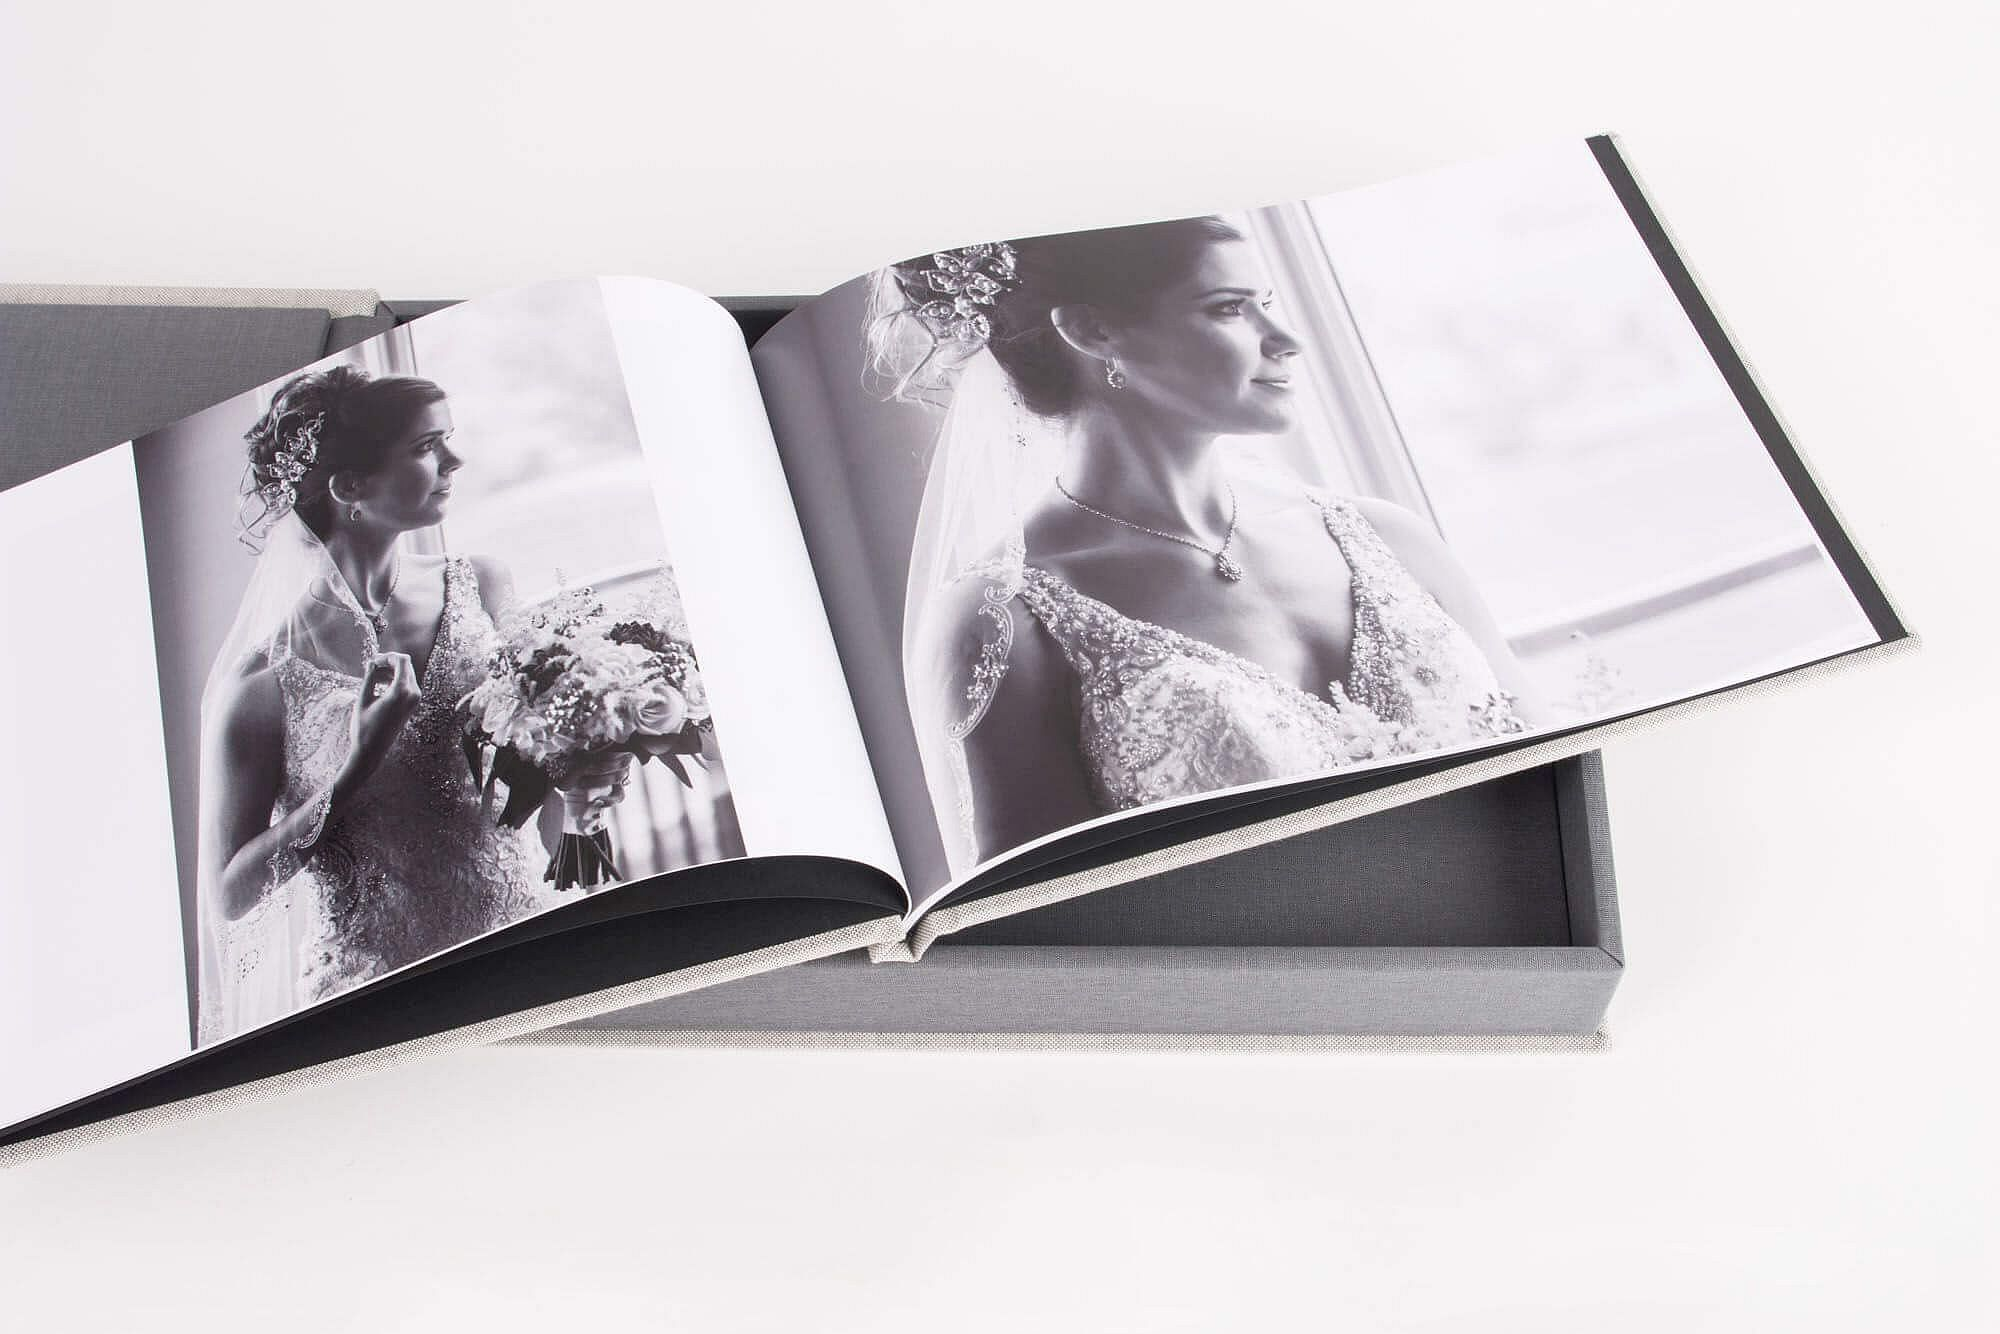 Photo Books perfect for documentary style wedding photography